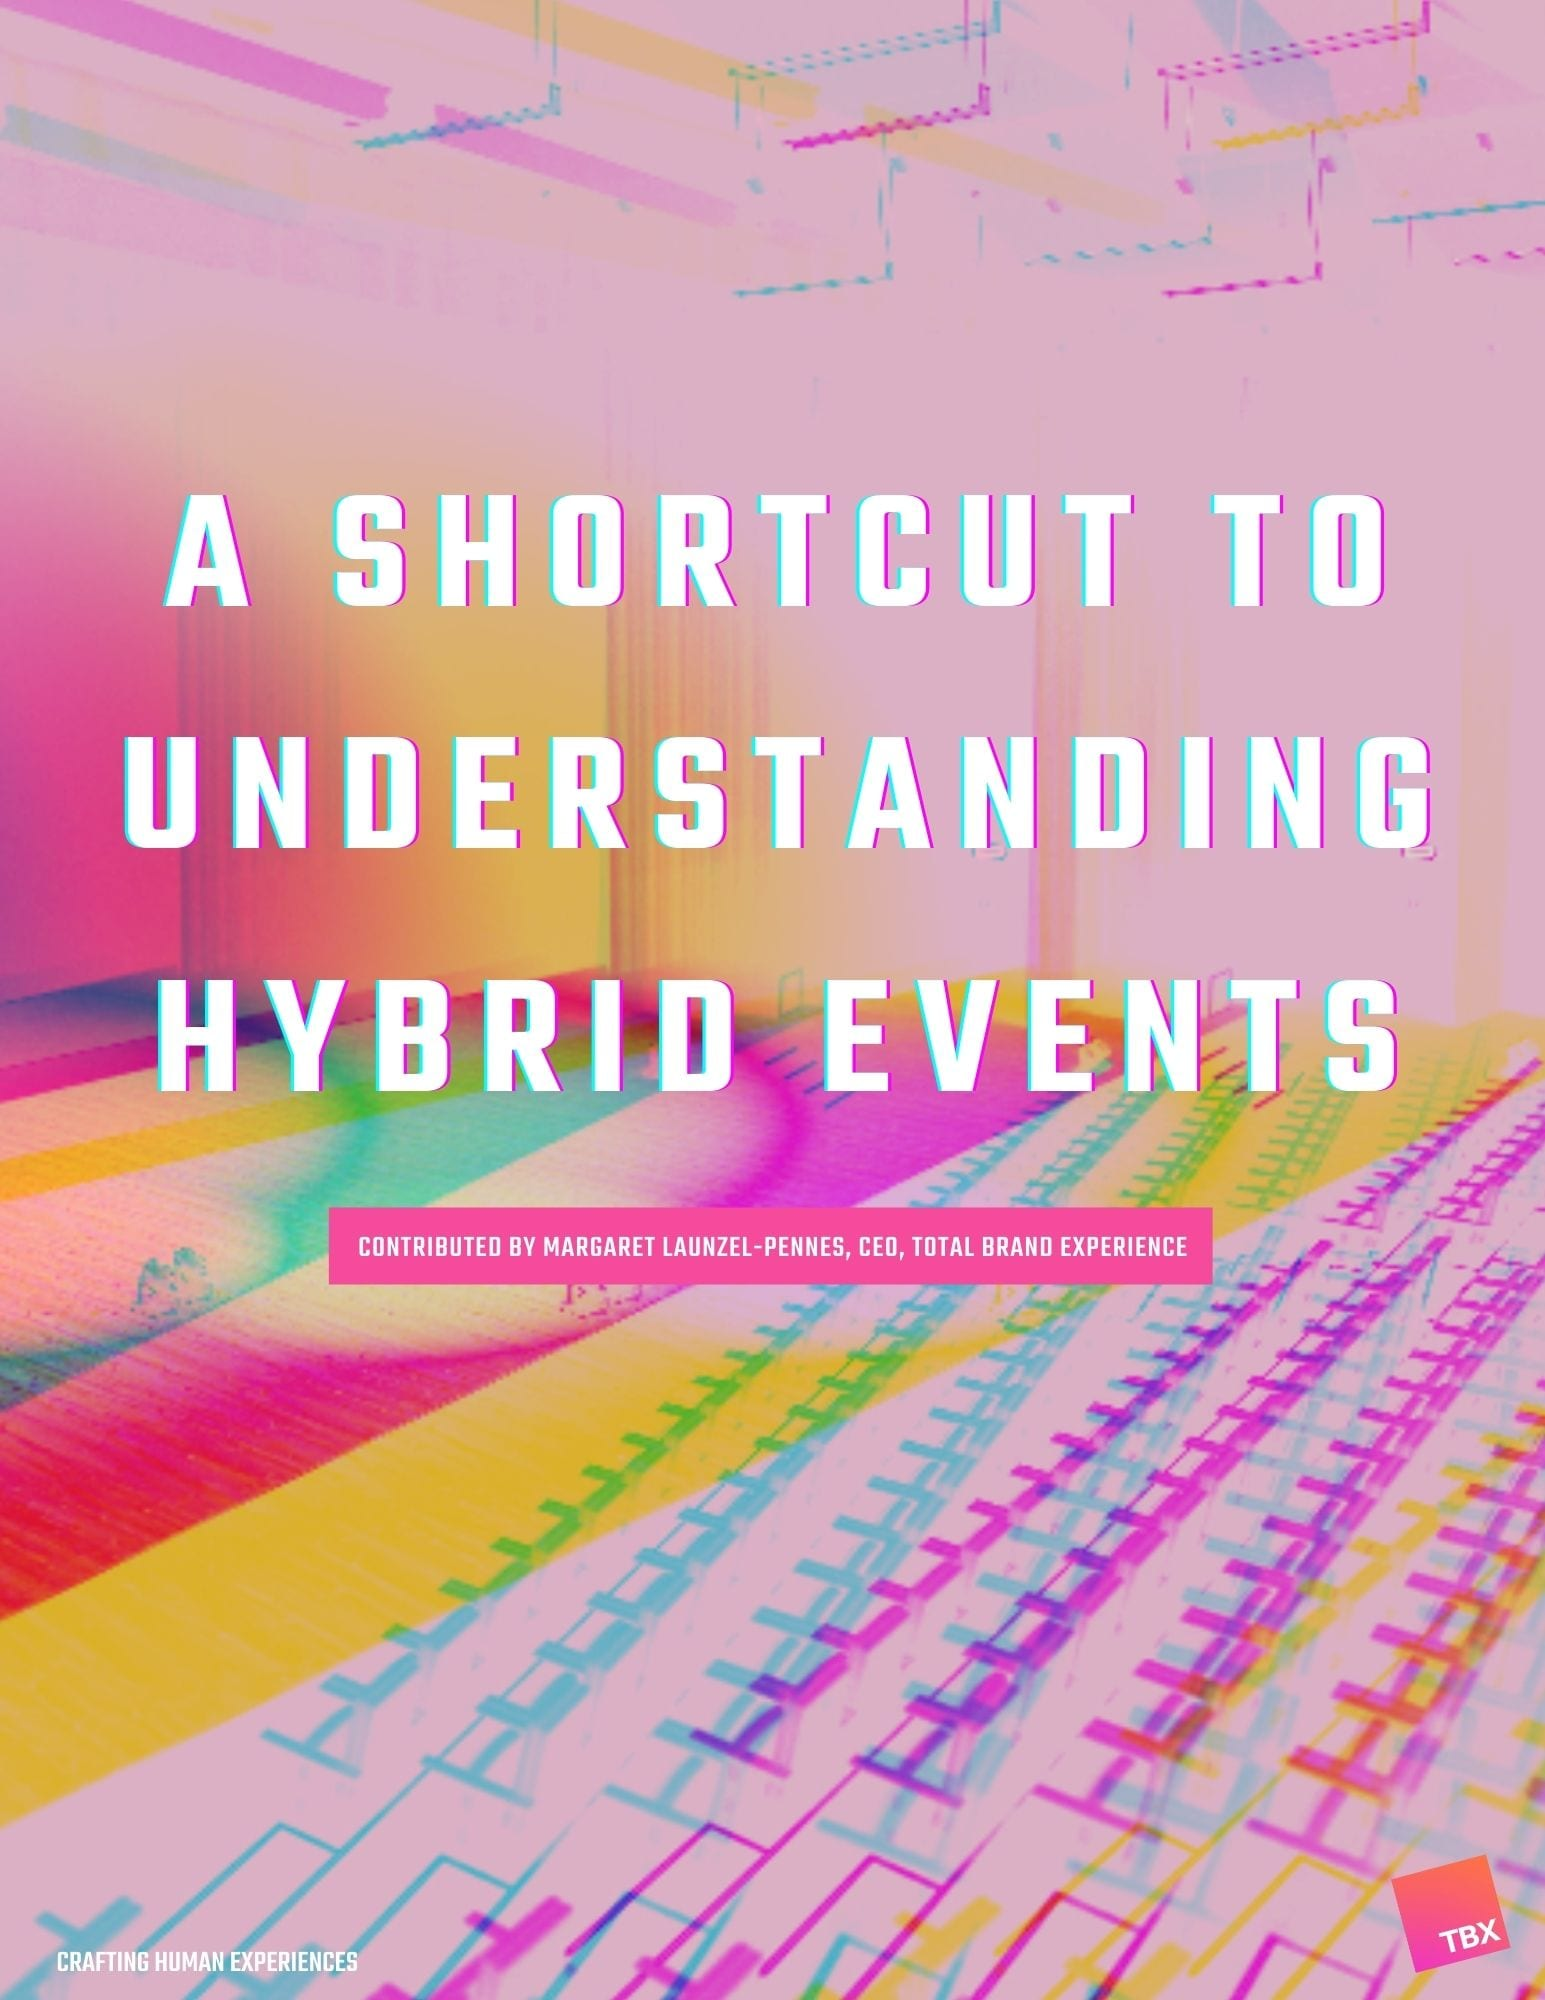 A Shortcut to Understanding Hybrid Event Solutions